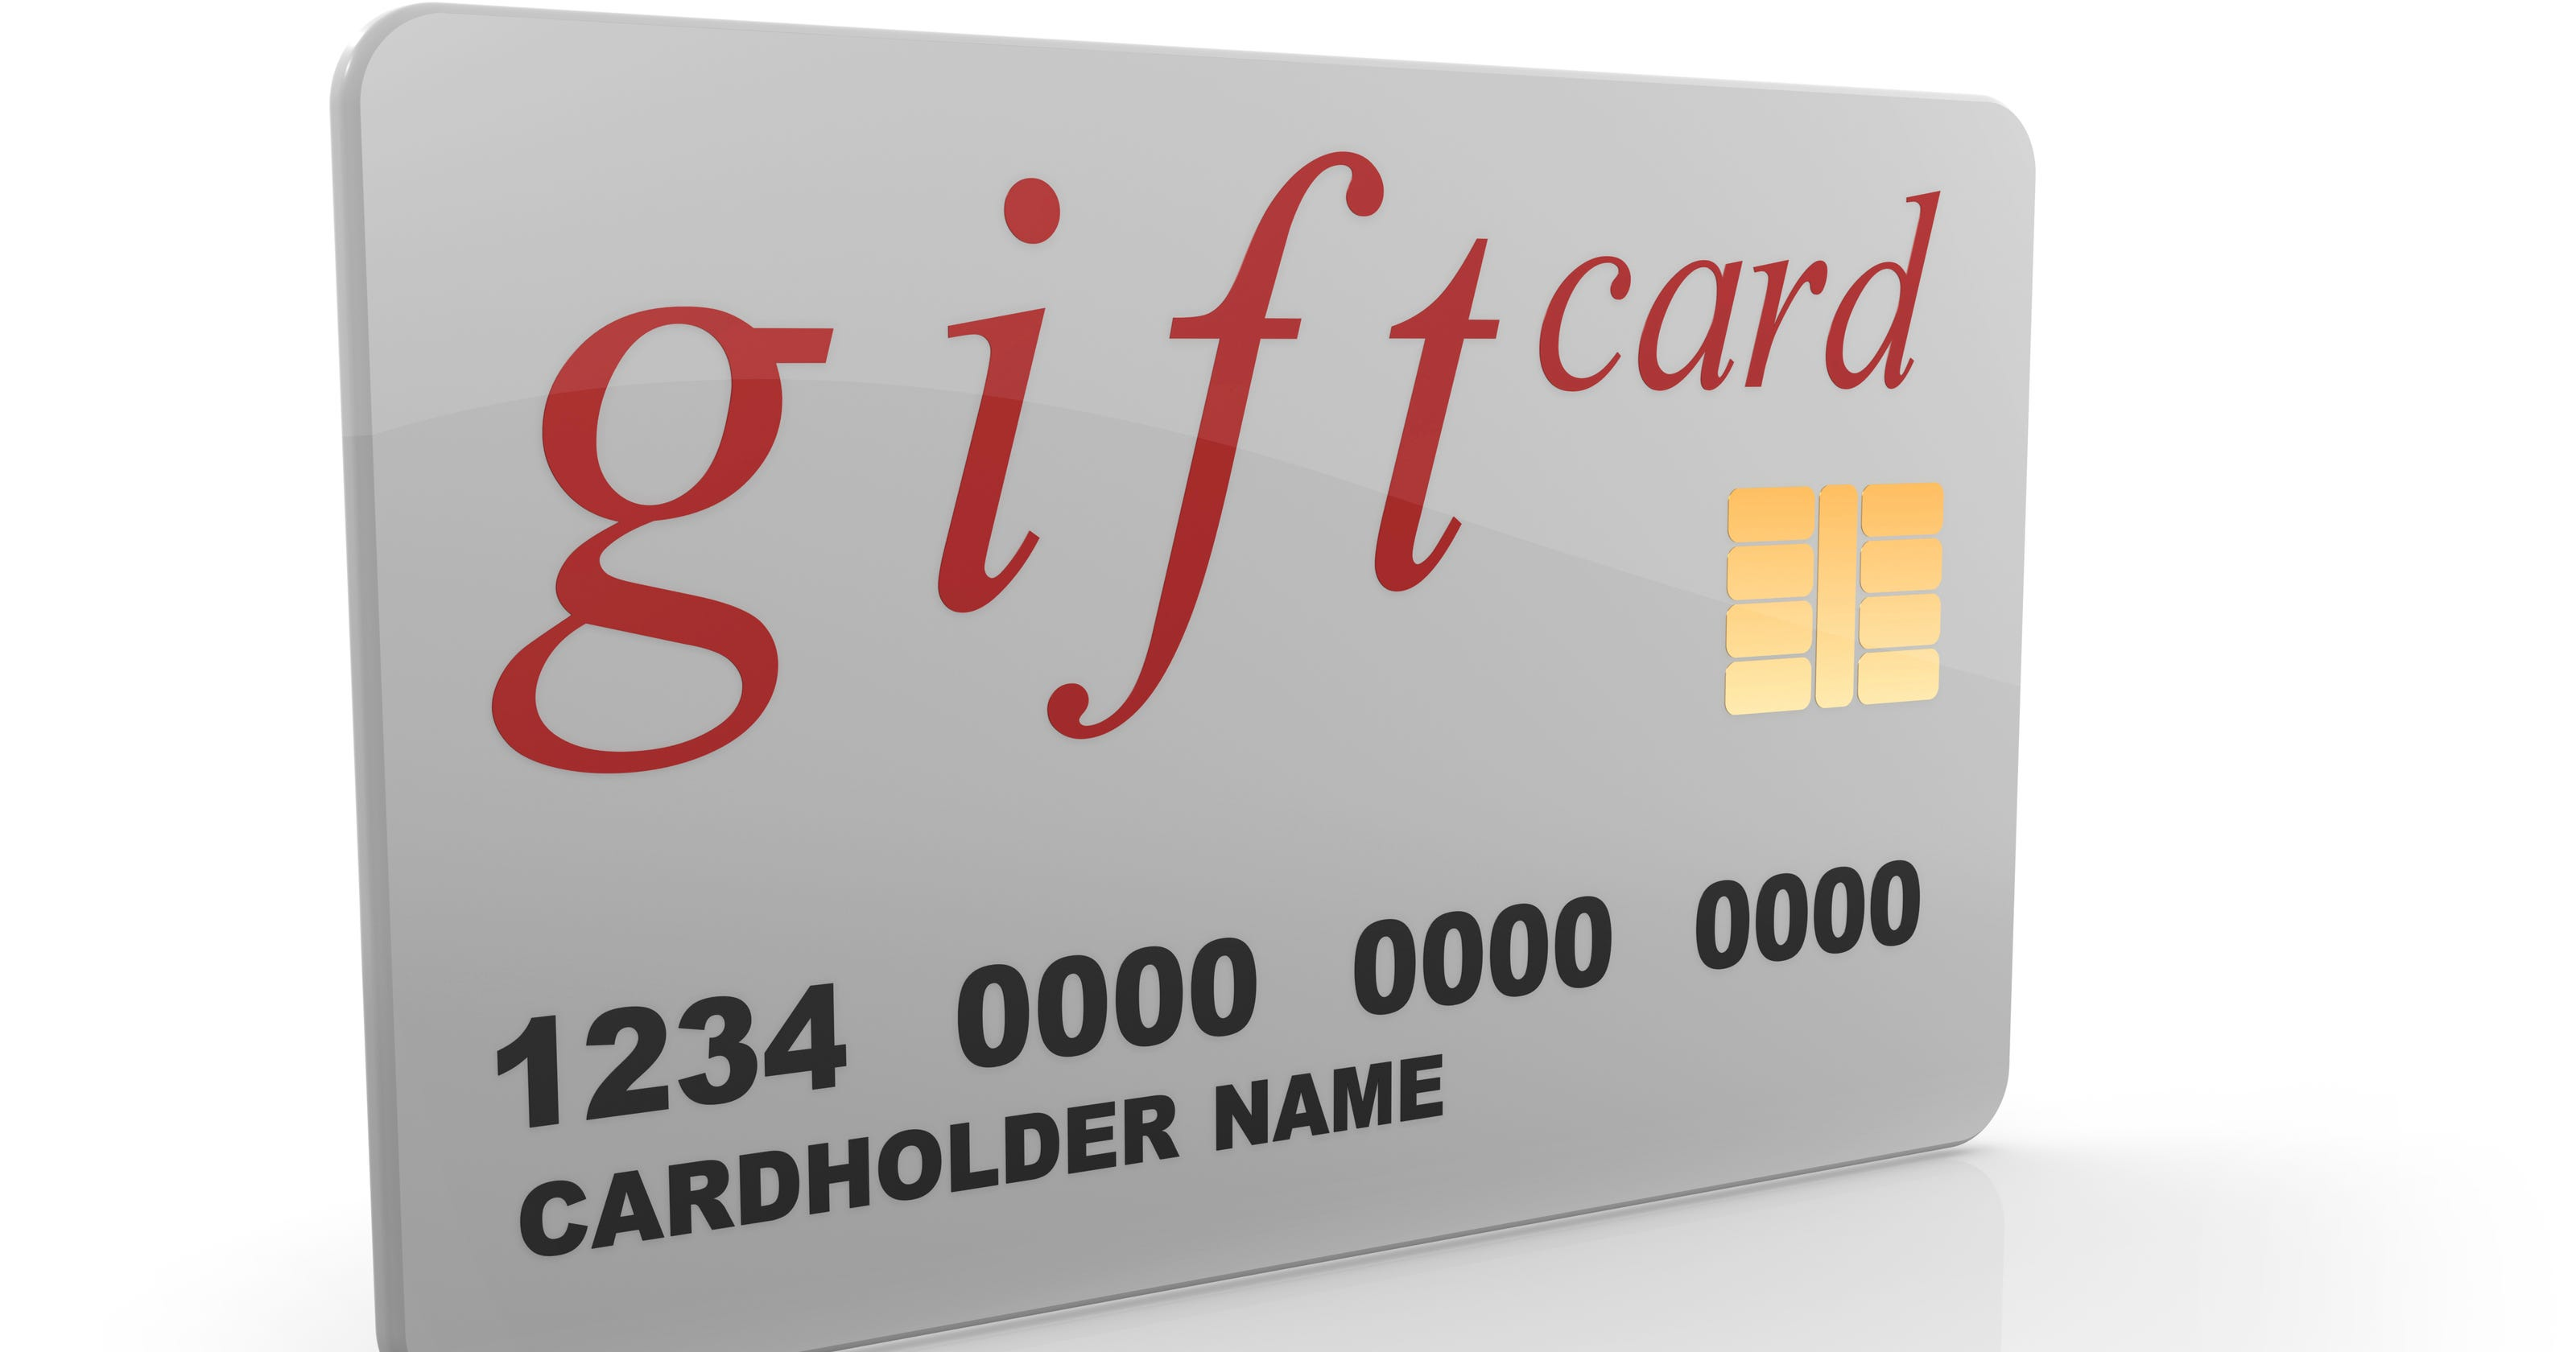 Restaurant gift cards can be a risky investment